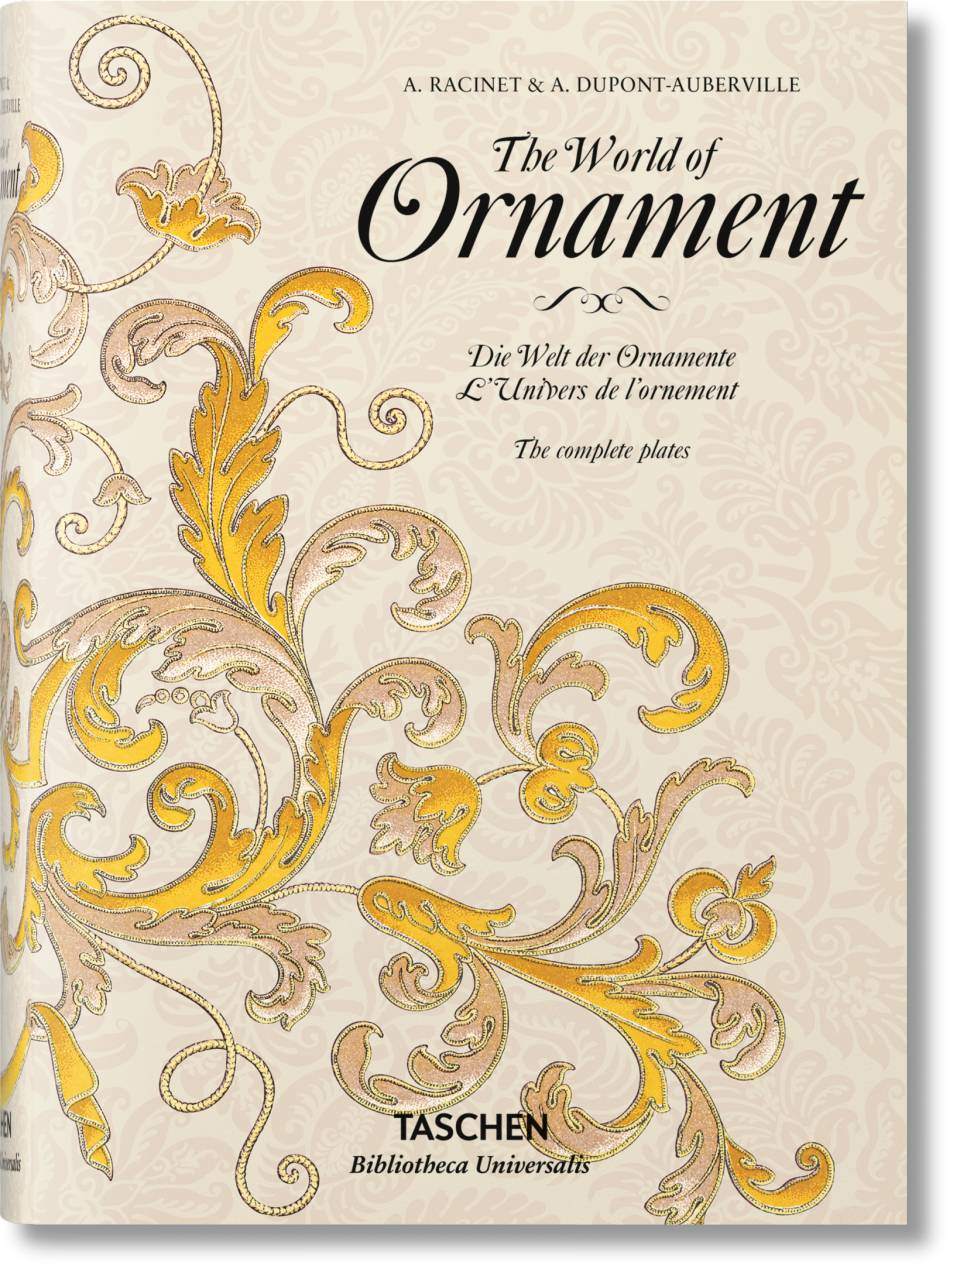 The World of Ornament - image 1